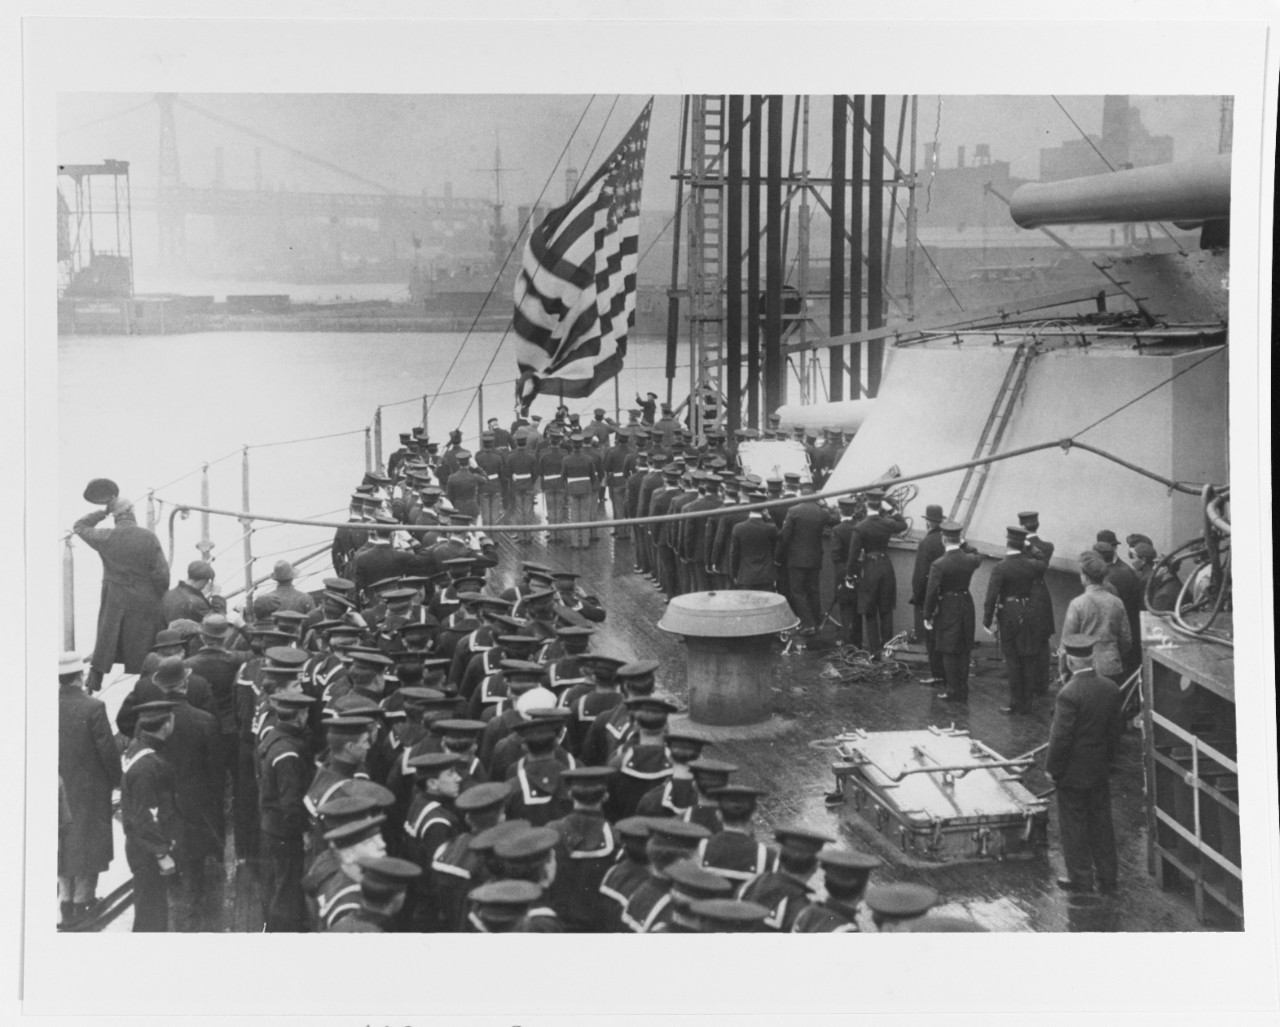 The National Ensign is raised at New York's stern during her commissioning ceremonies, 15 April 1914, at the New York Navy Yard, Brooklyn, N.Y. Courtesy of the Naval Historical Foundation, 1975. (Naval History and Heritage Command Photograph NH 83711)